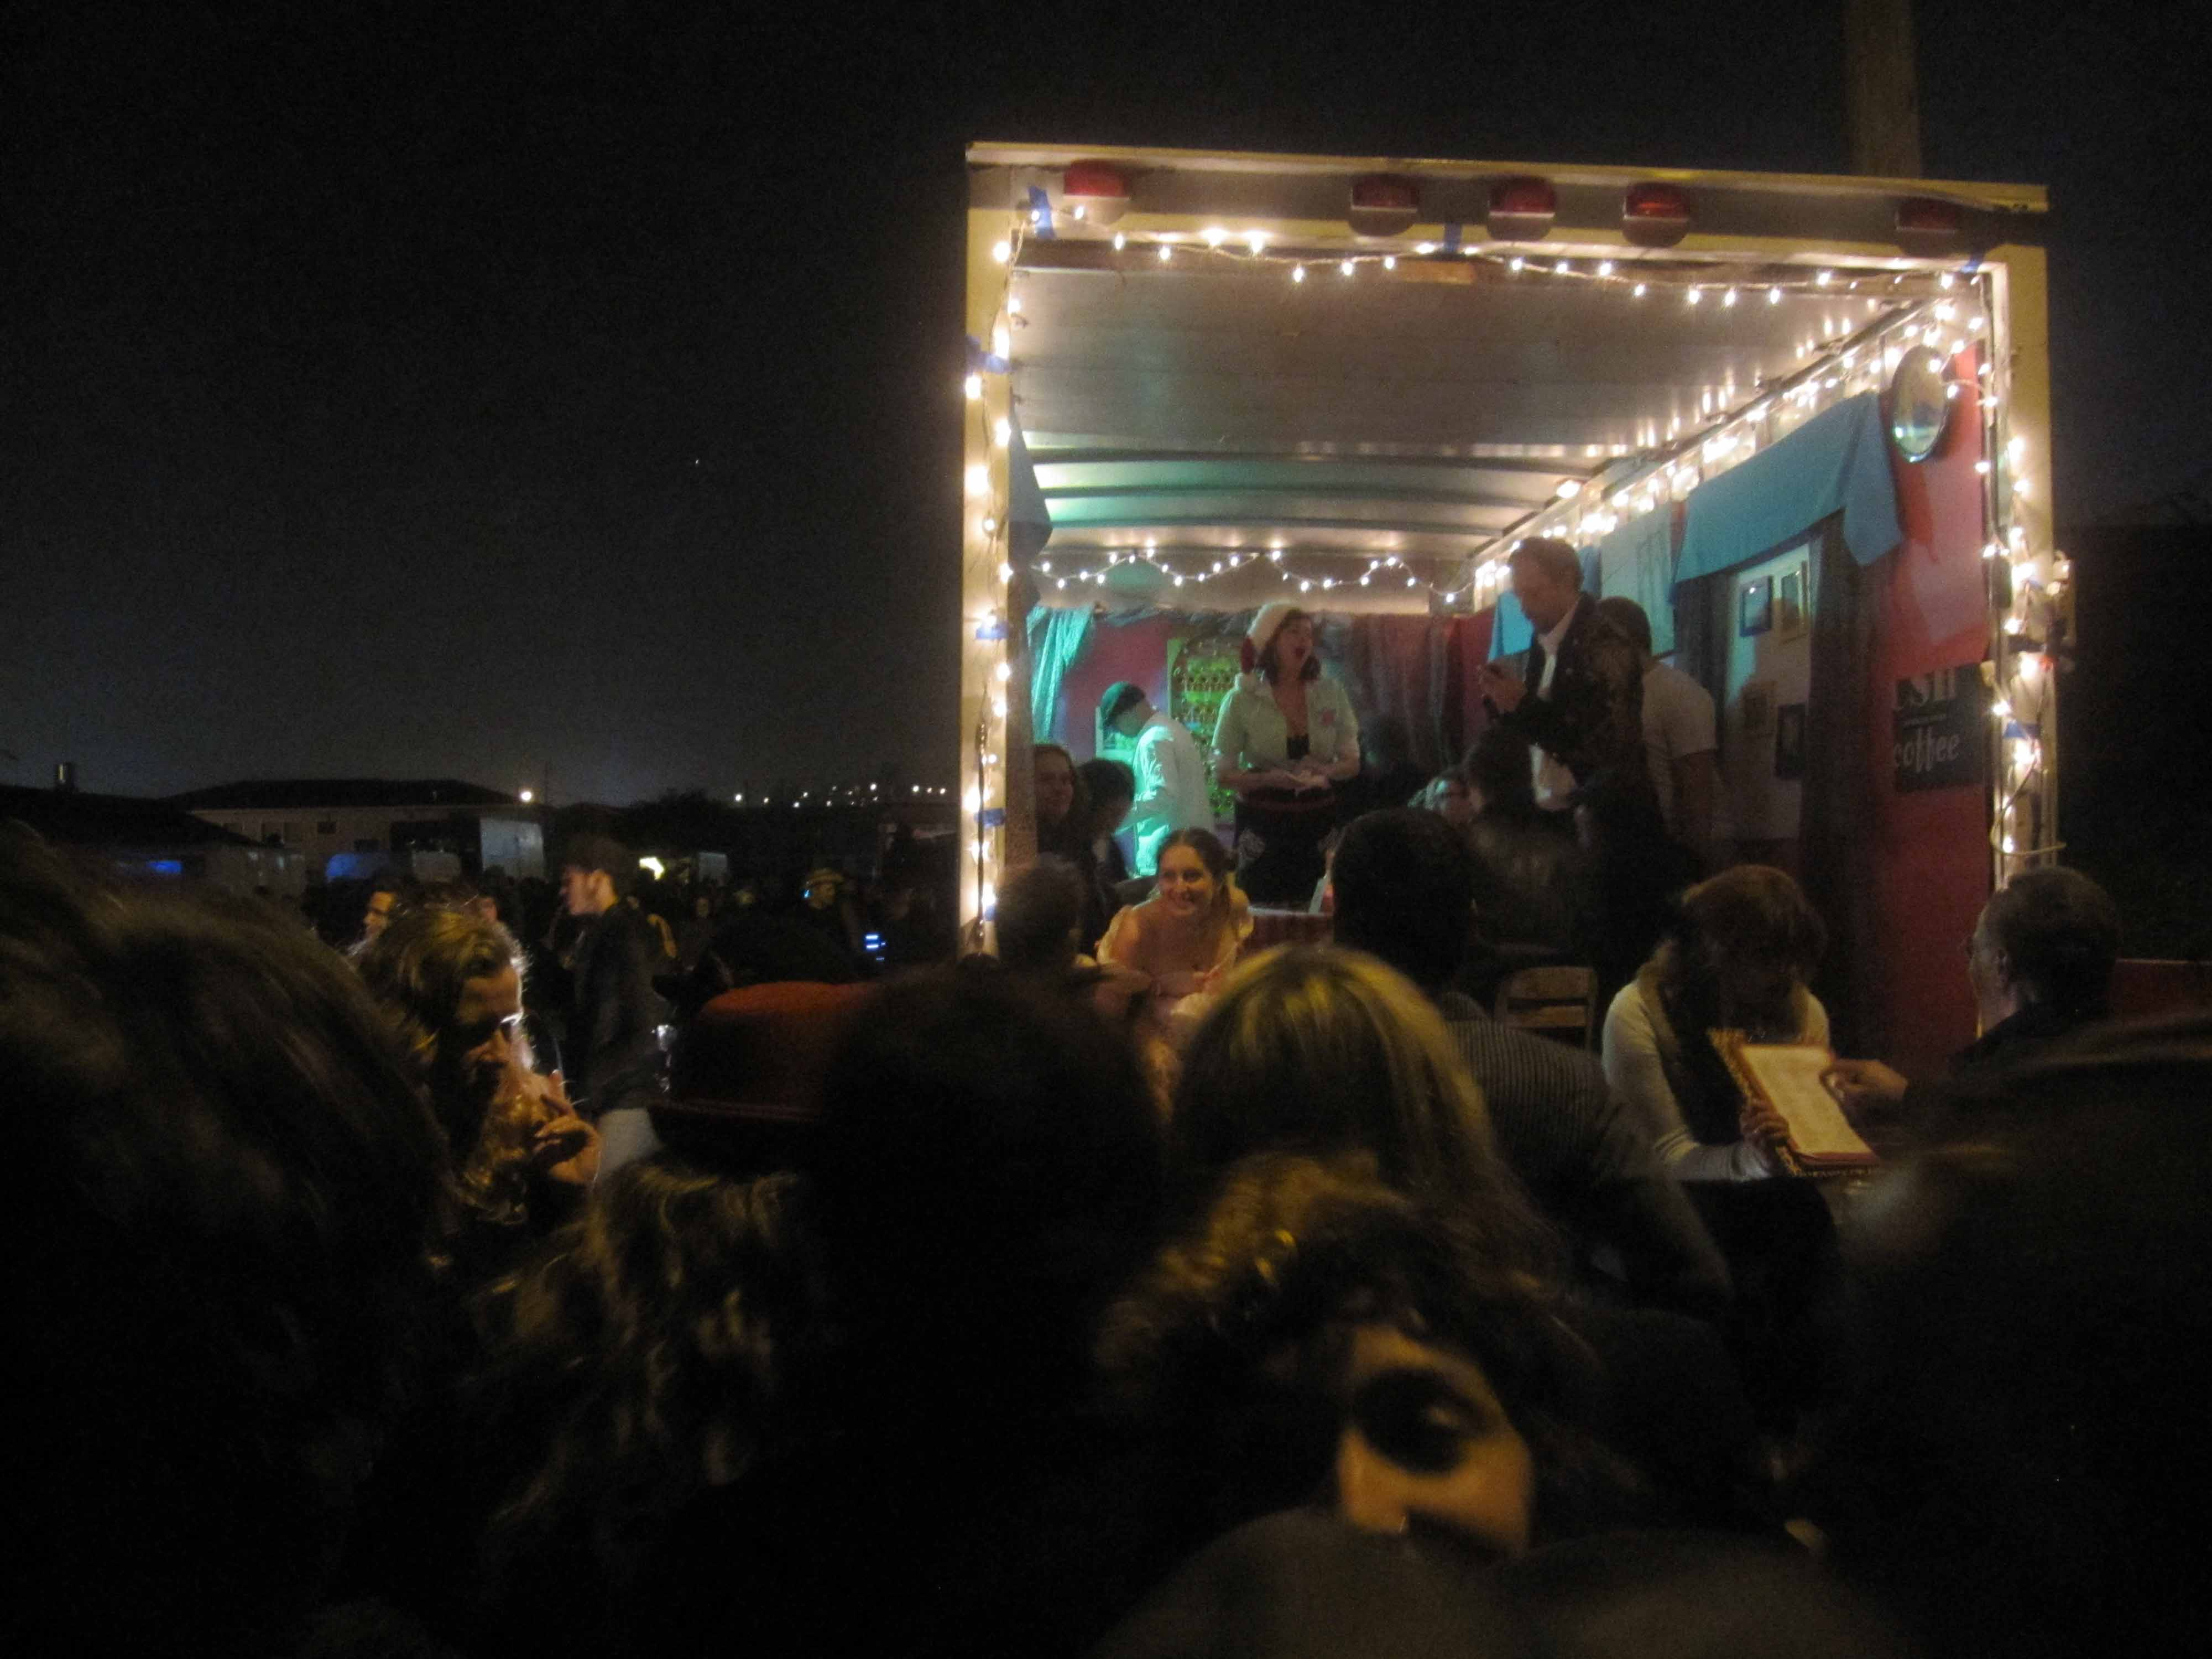 Lost Horizon Night Market - San Francisco - Atlas Obscura Blog